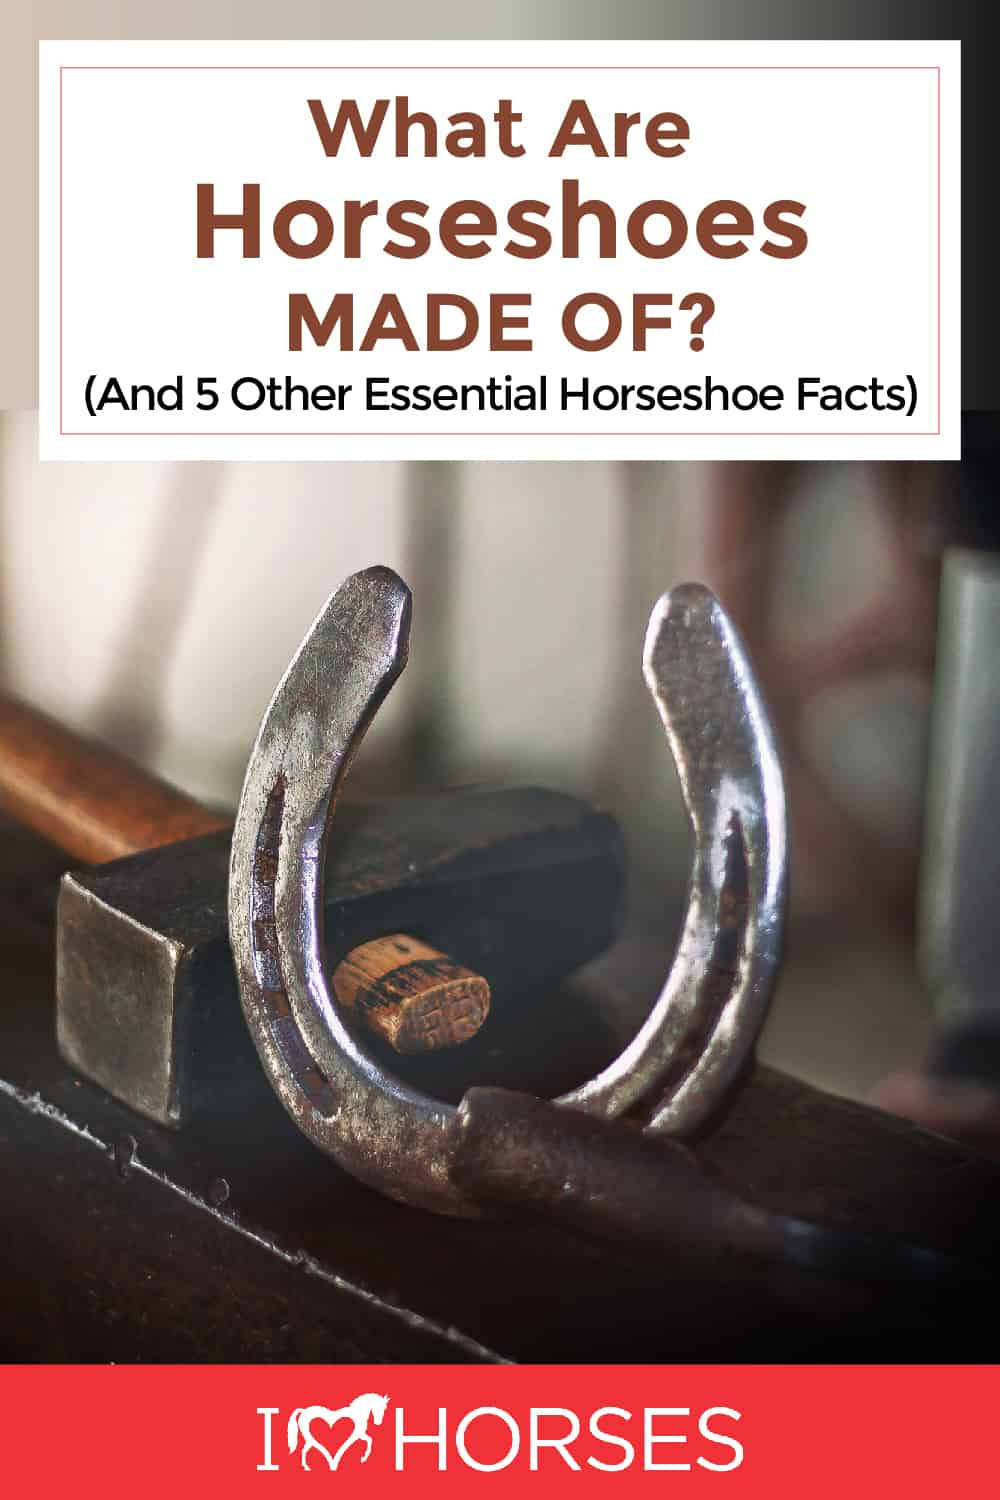 6 Essential Things To Know About Horseshoes